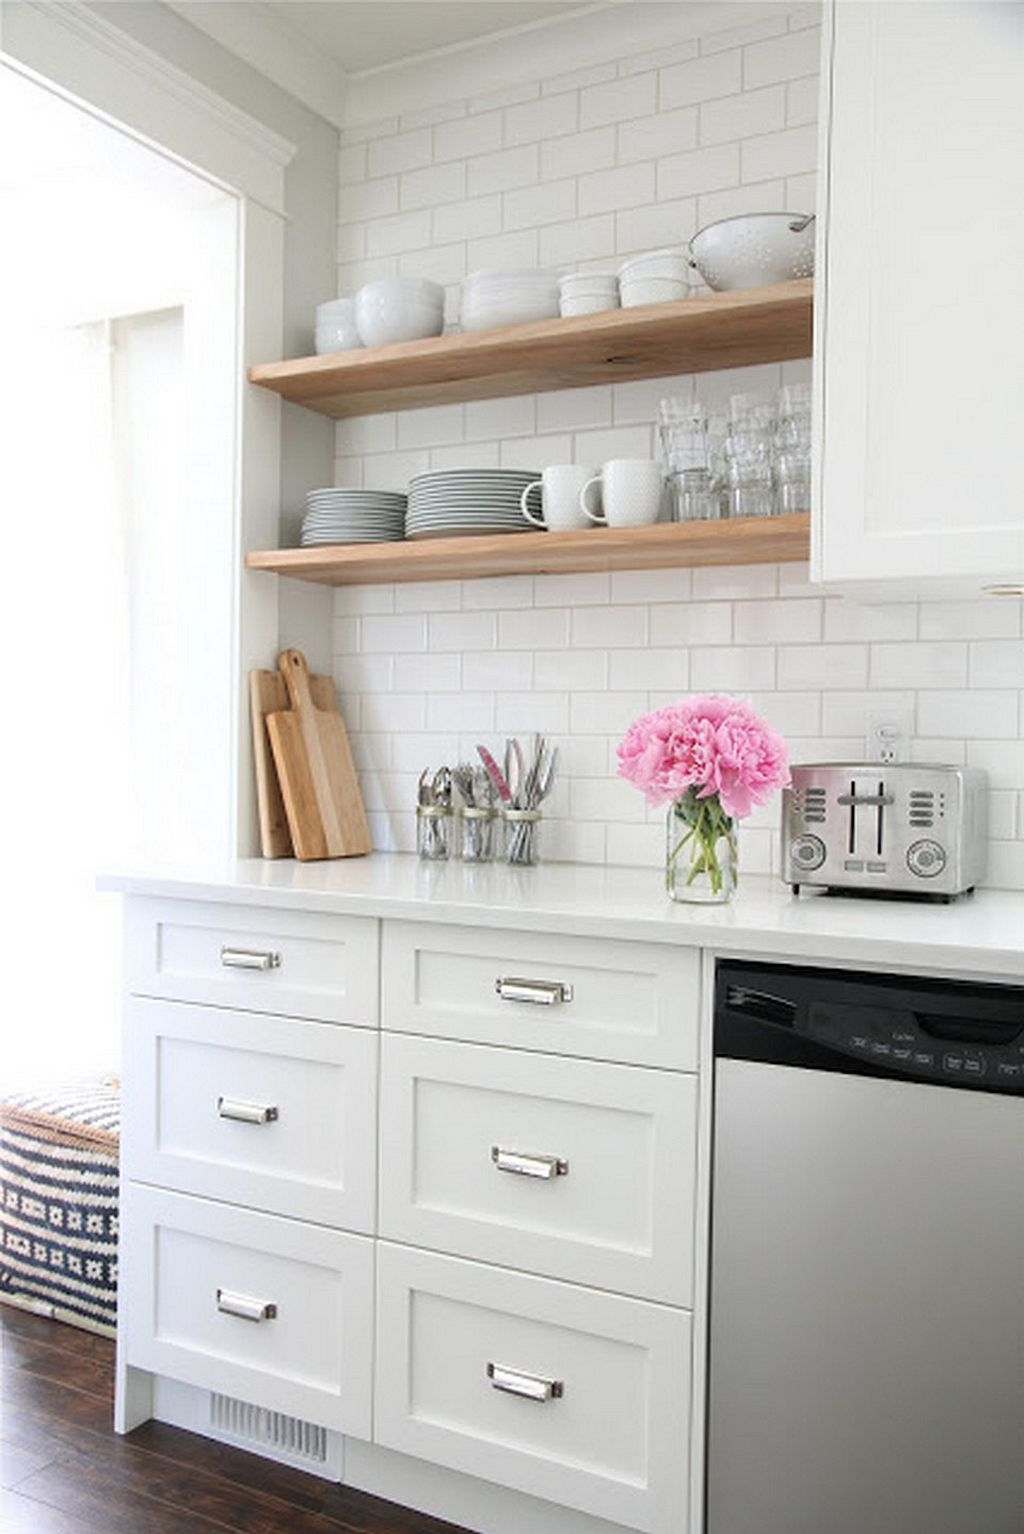 Nice 30+ Amazing Storage Hacks on a Budget For Small Kitchen https ...